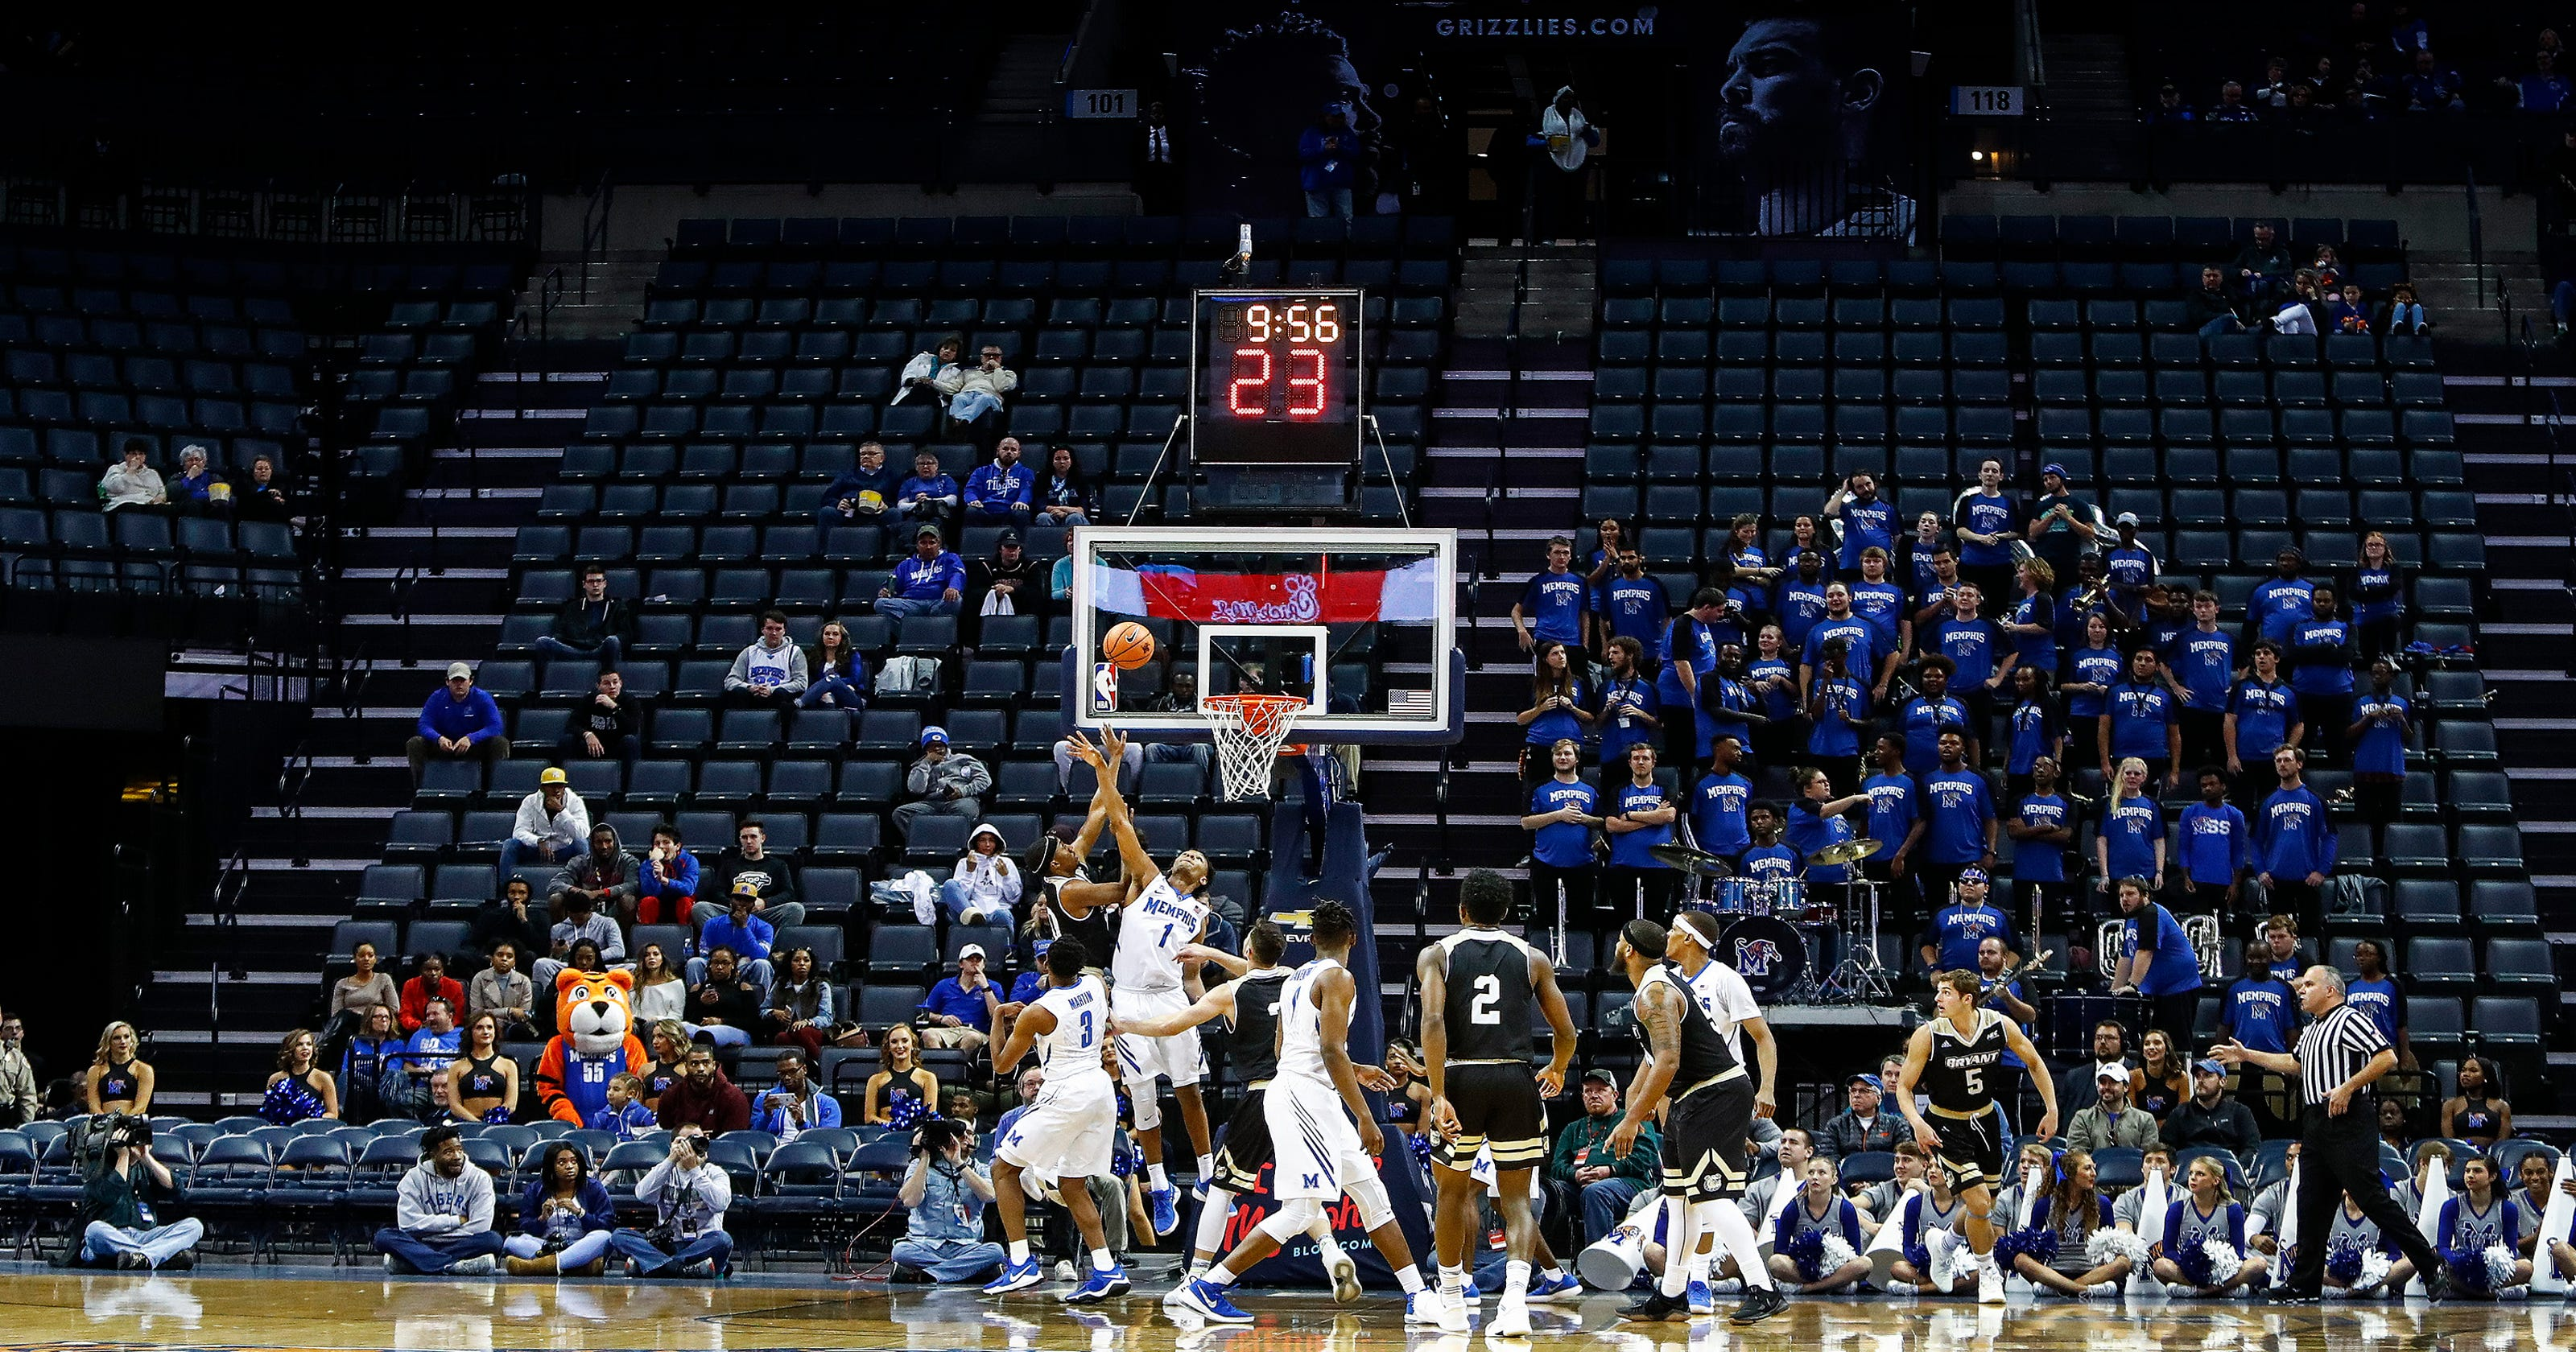 memphis tigers may miss grizzlies payment over basketball attendance